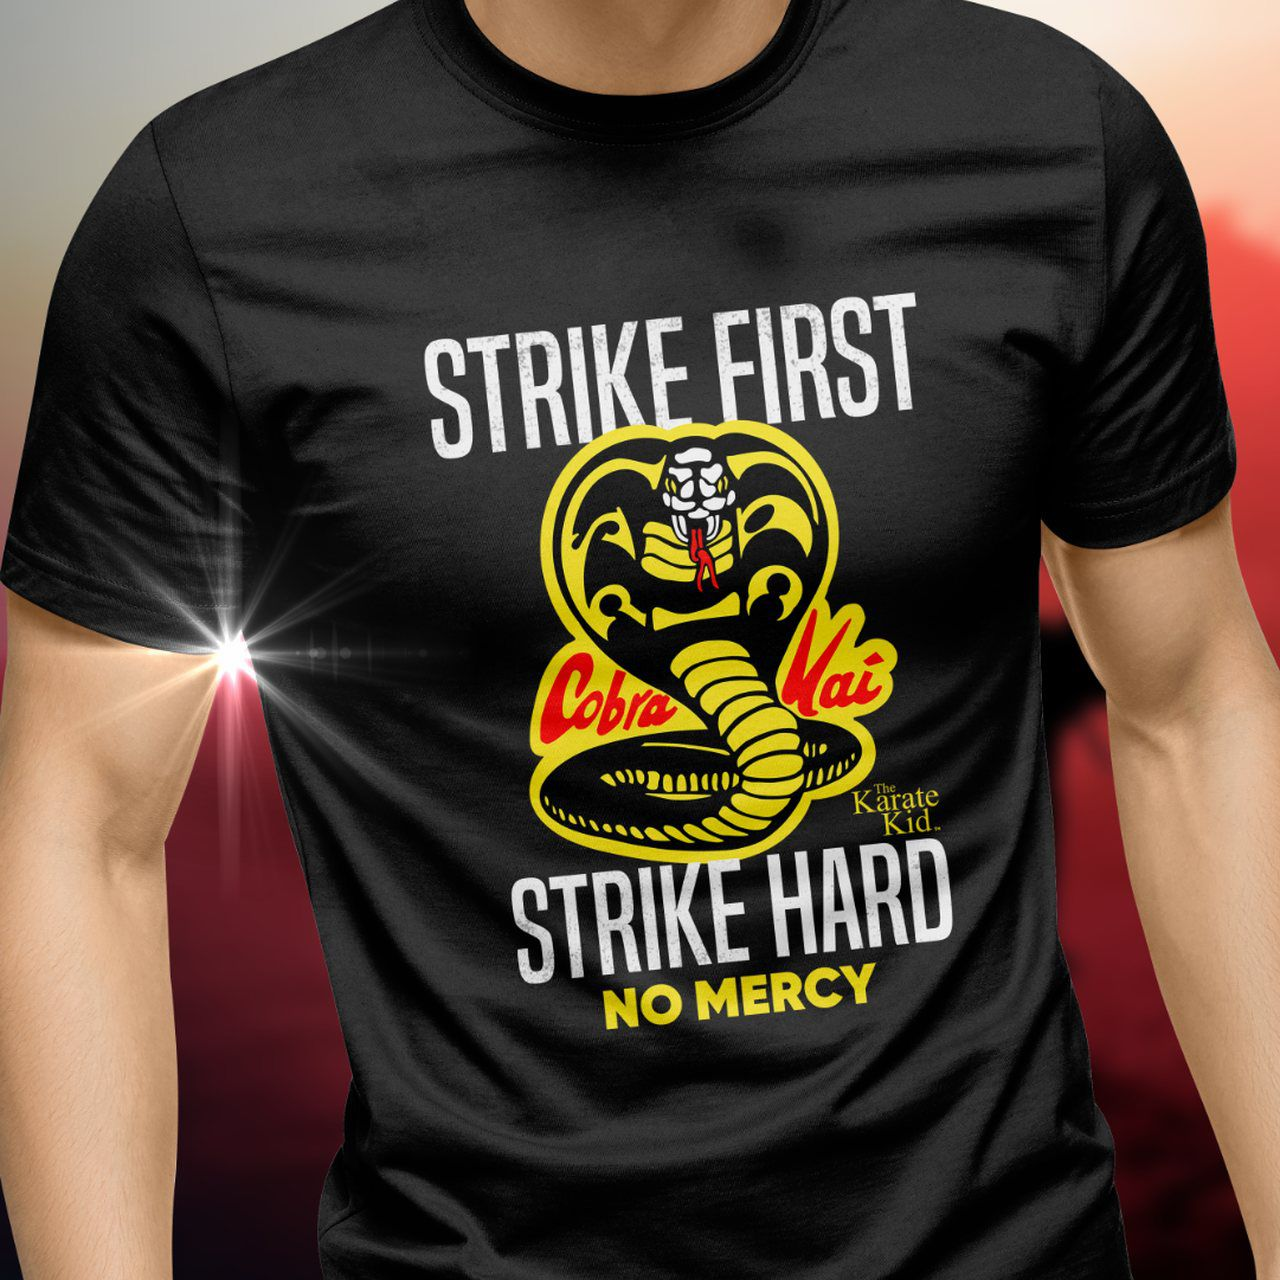 Camiseta Cobra Kai (Strike First Strike Hard): The Karate Kid (Cobra Kai)